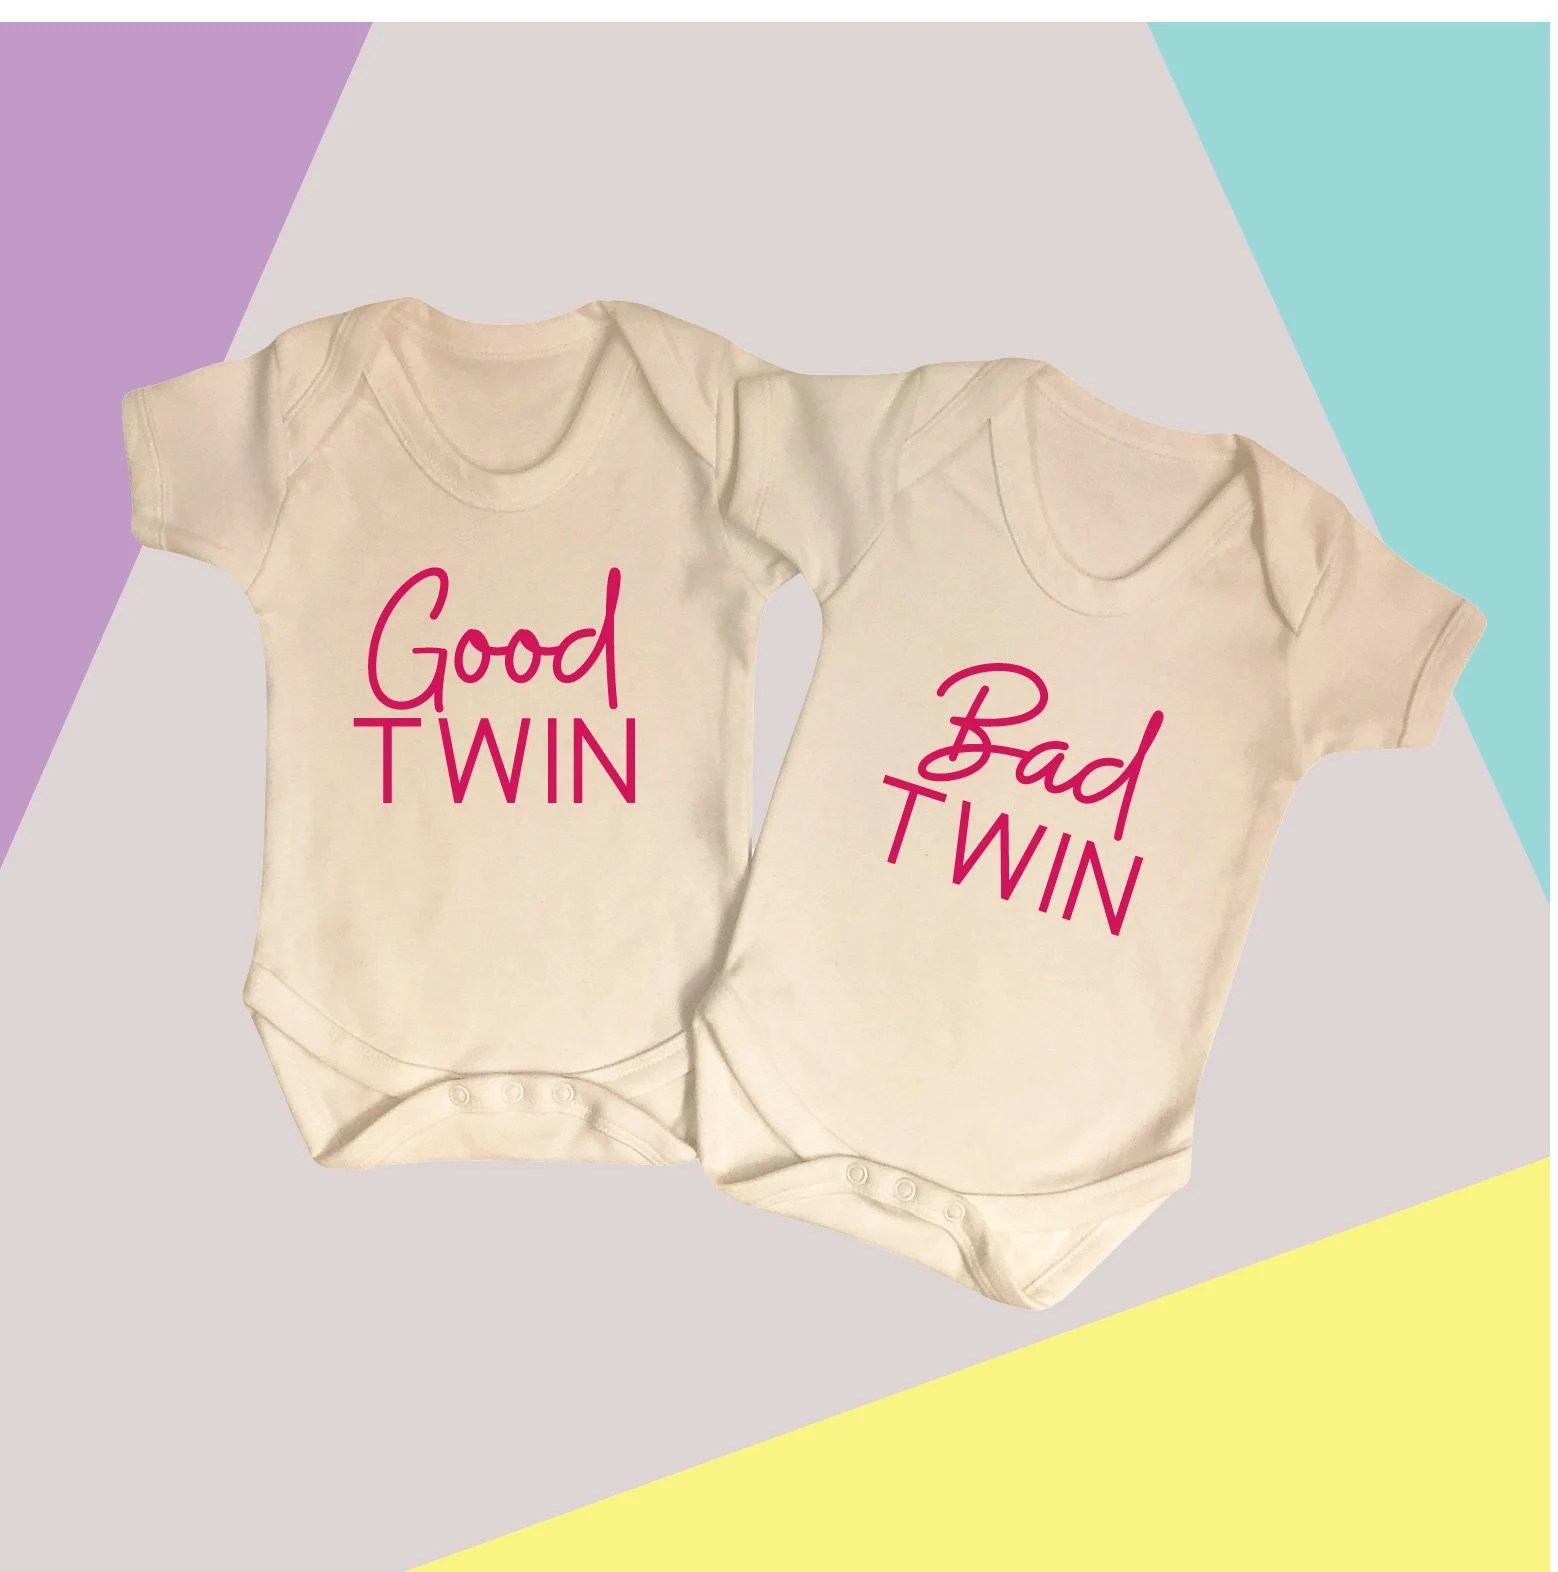 Bad Set For Baby Good Twin Bad Twin Good Twin Bad Twin Set Twin Baby Vest Set Twin Babygrows New Baby Gift Twins Twin Baby Shower Funny Twin